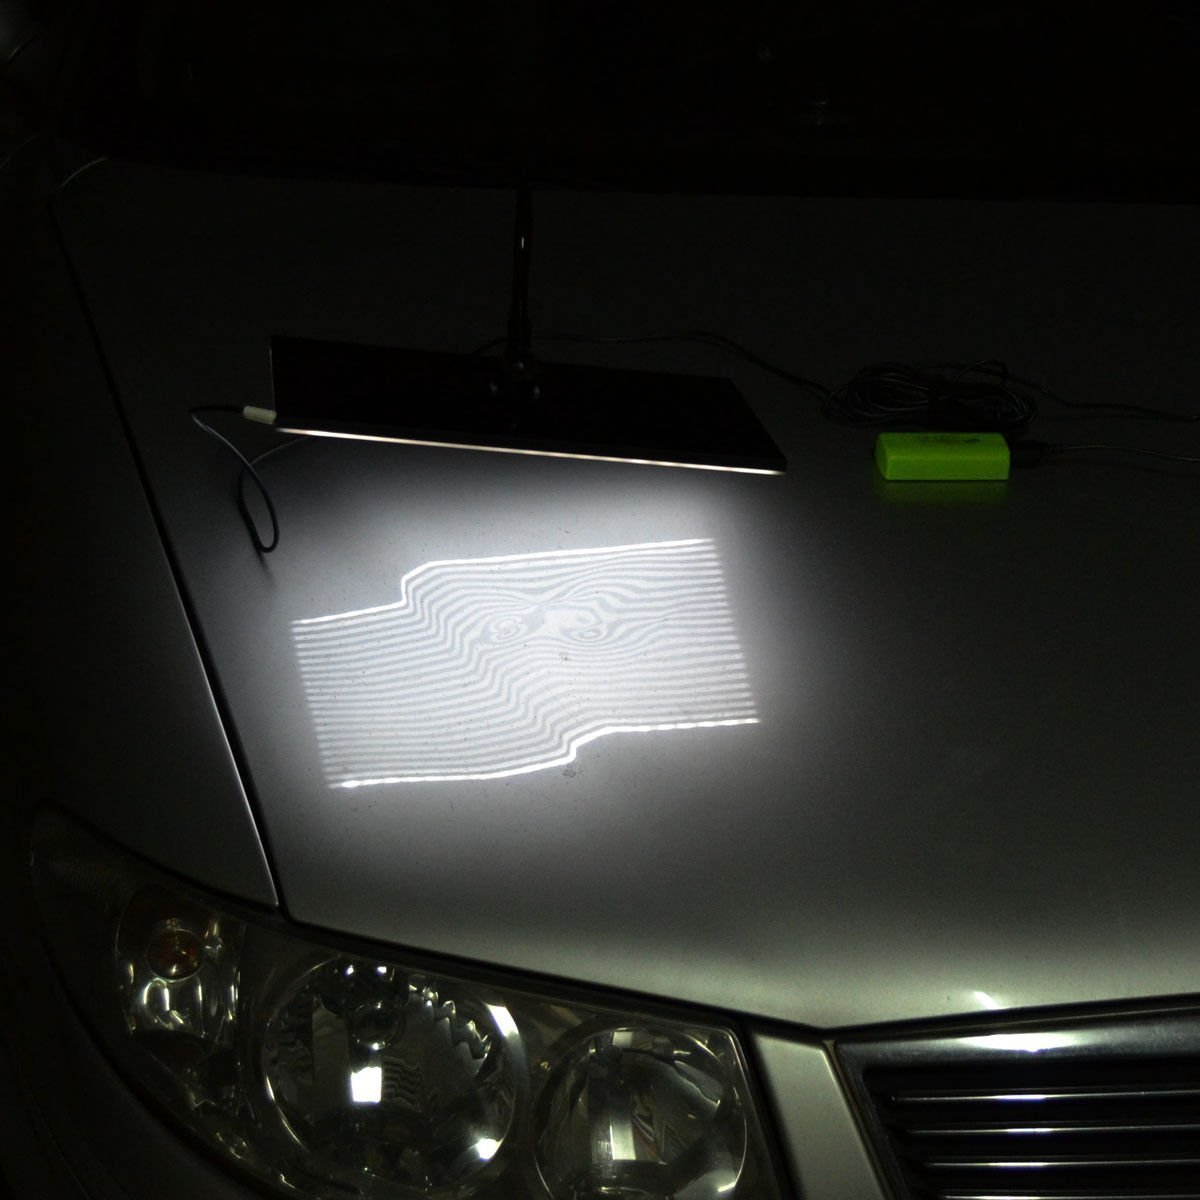 Amazon.com Furuix 1 pcs PDR Strip Line Board Reflective Board PDR Light L& PDR Light LED L& LED Light for Dent Detection Hail Damage Repair with ... & Amazon.com: Furuix 1 pcs PDR Strip Line Board Reflective Board PDR ... azcodes.com